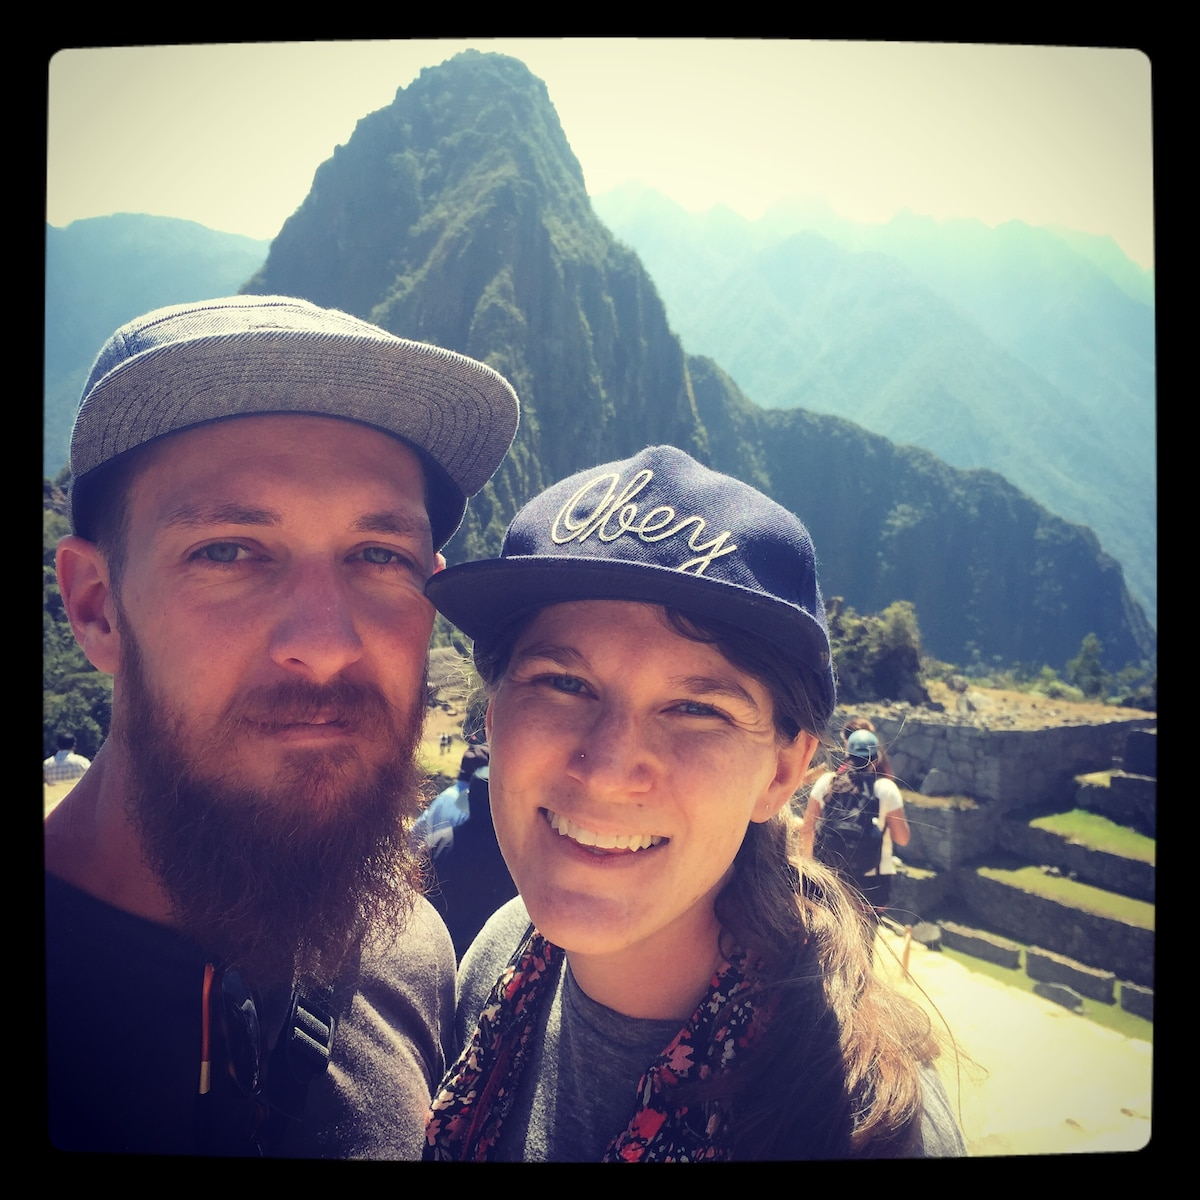 Daniel And Corrie From South Carolina, United States